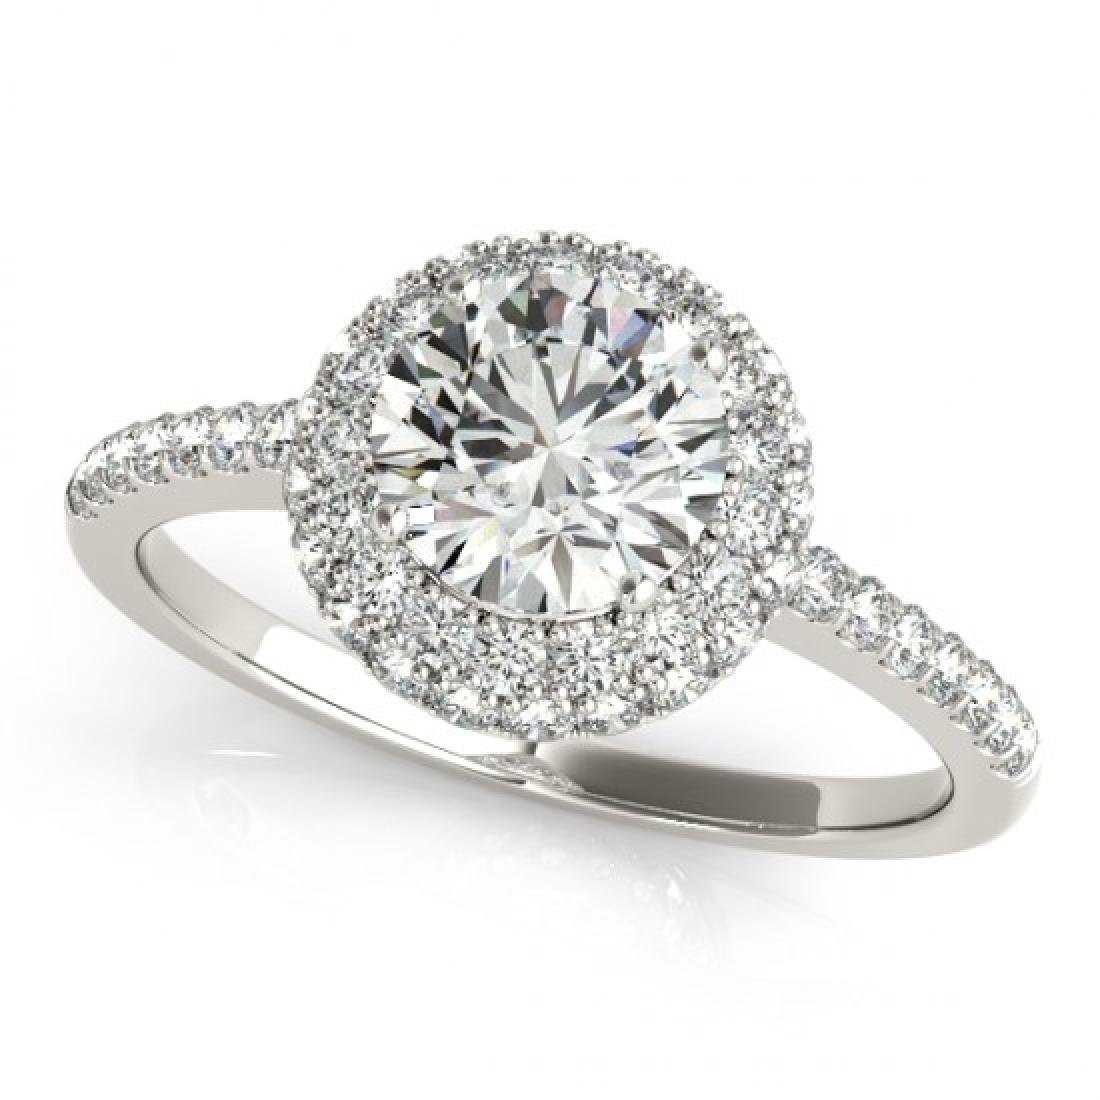 1.1 CTW Certified VS/SI Diamond Solitaire Halo Ring 14K